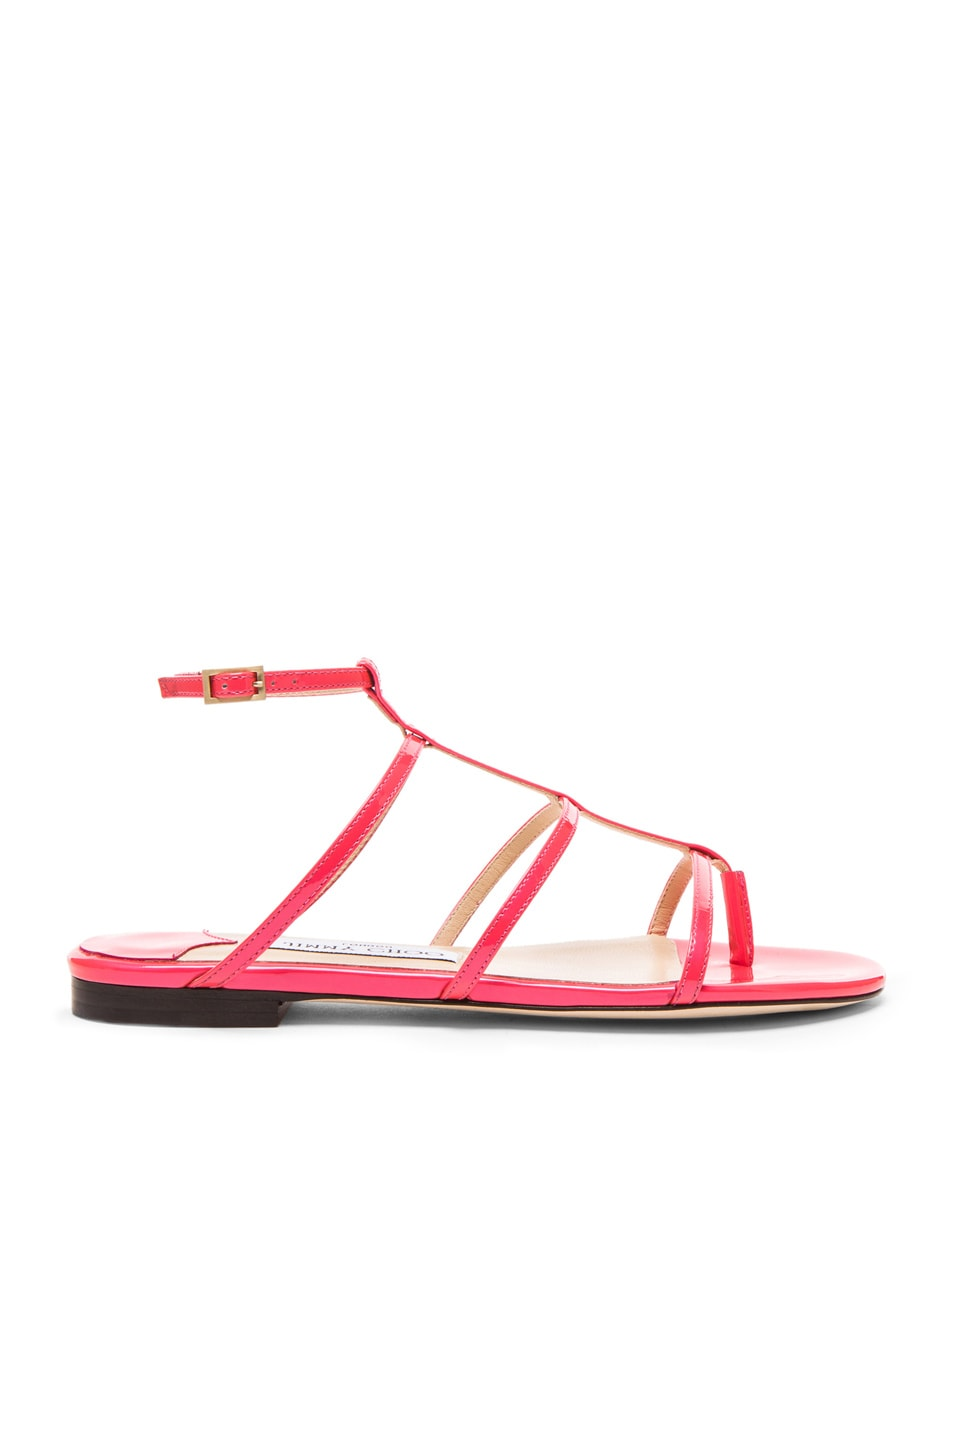 0765fea160952 Image 1 of Jimmy Choo Doodle Patent Leather Thong Sandals in Geranium